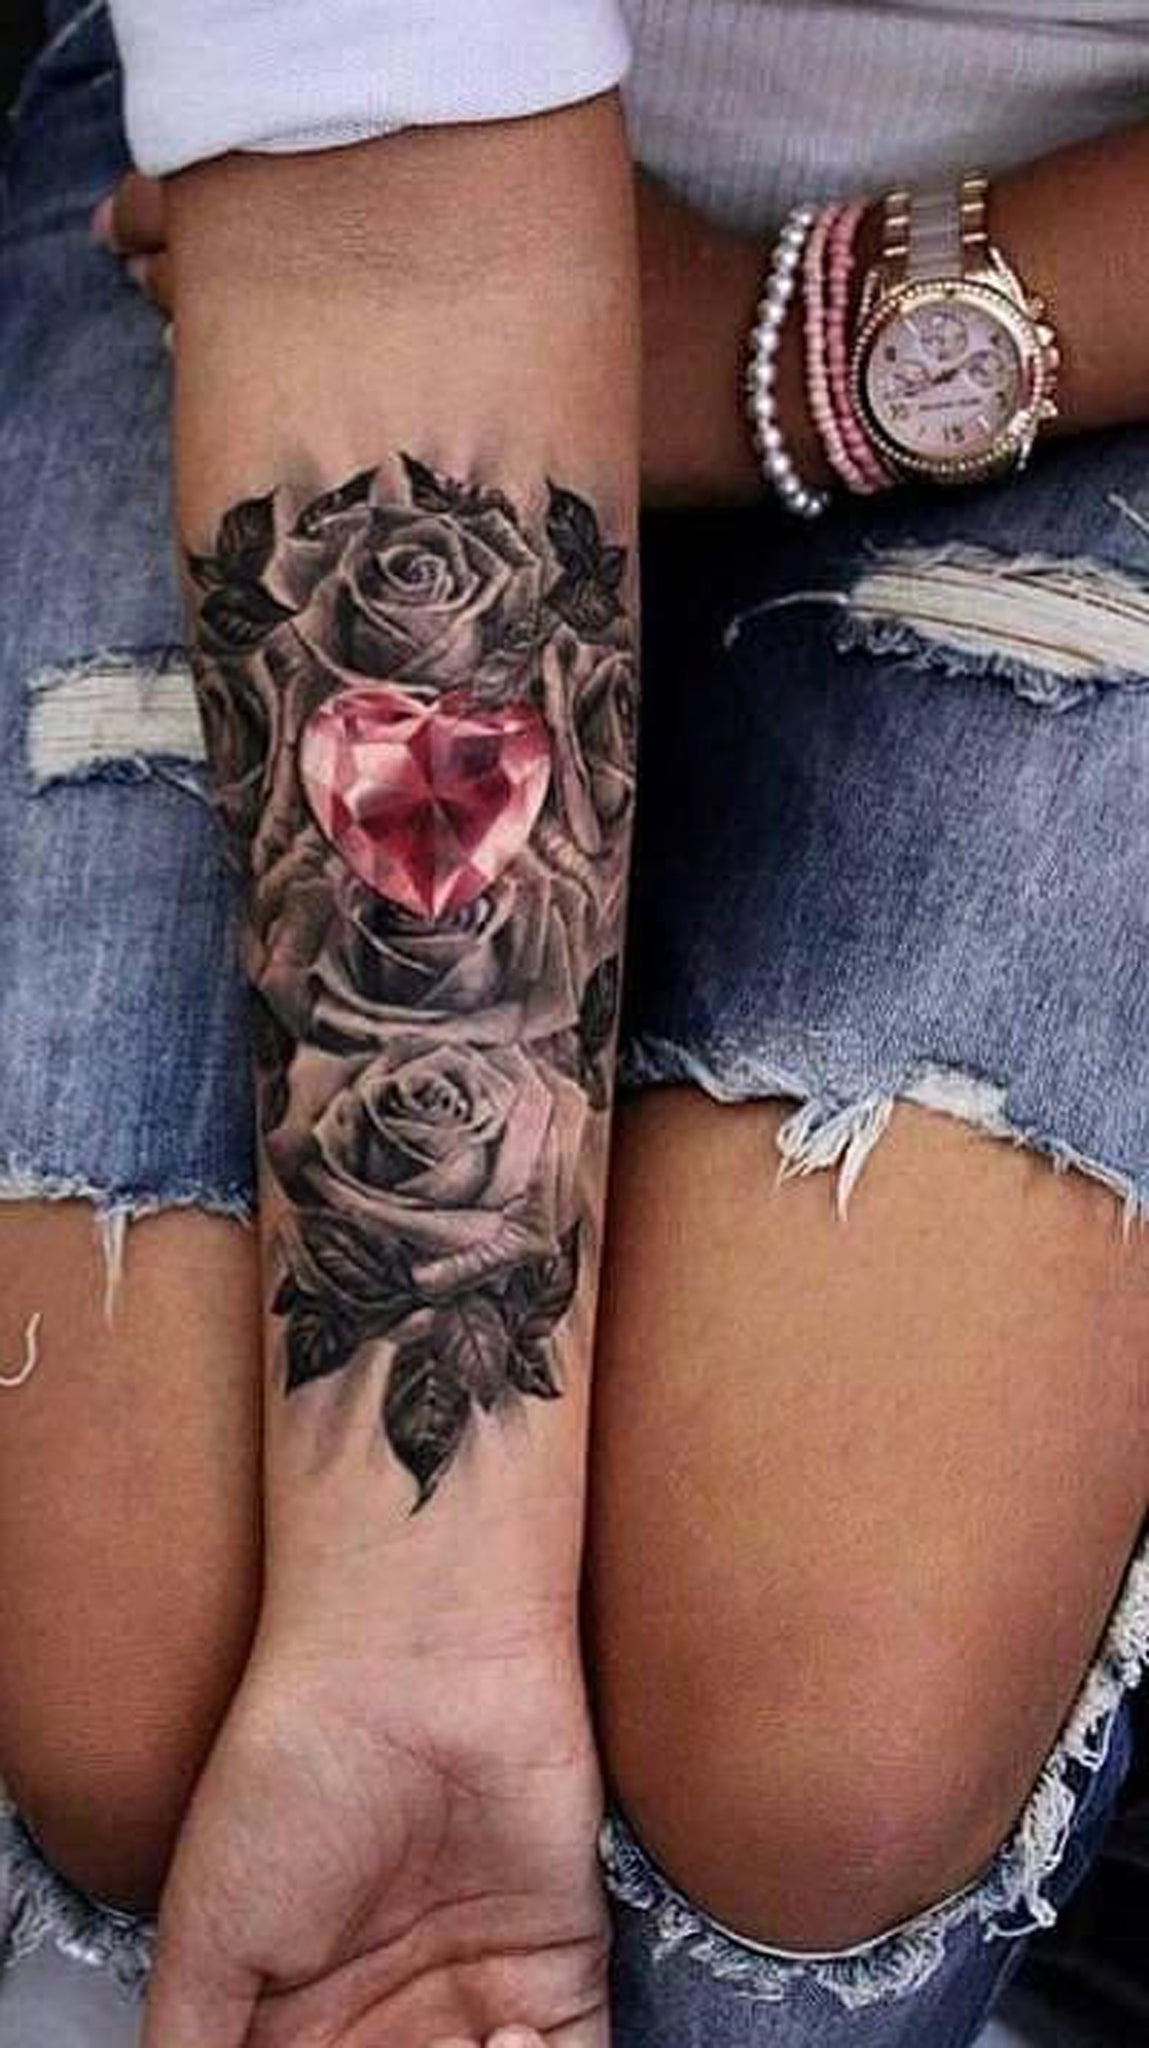 Pink Crystal Heart Forearm Tattoo ideas for Women - Black Floral Flower Rose Inner Wrist Arm Sleeve Tat -  ideas de tatuaje de antebrazo rosa - www.MyBodiArt.com